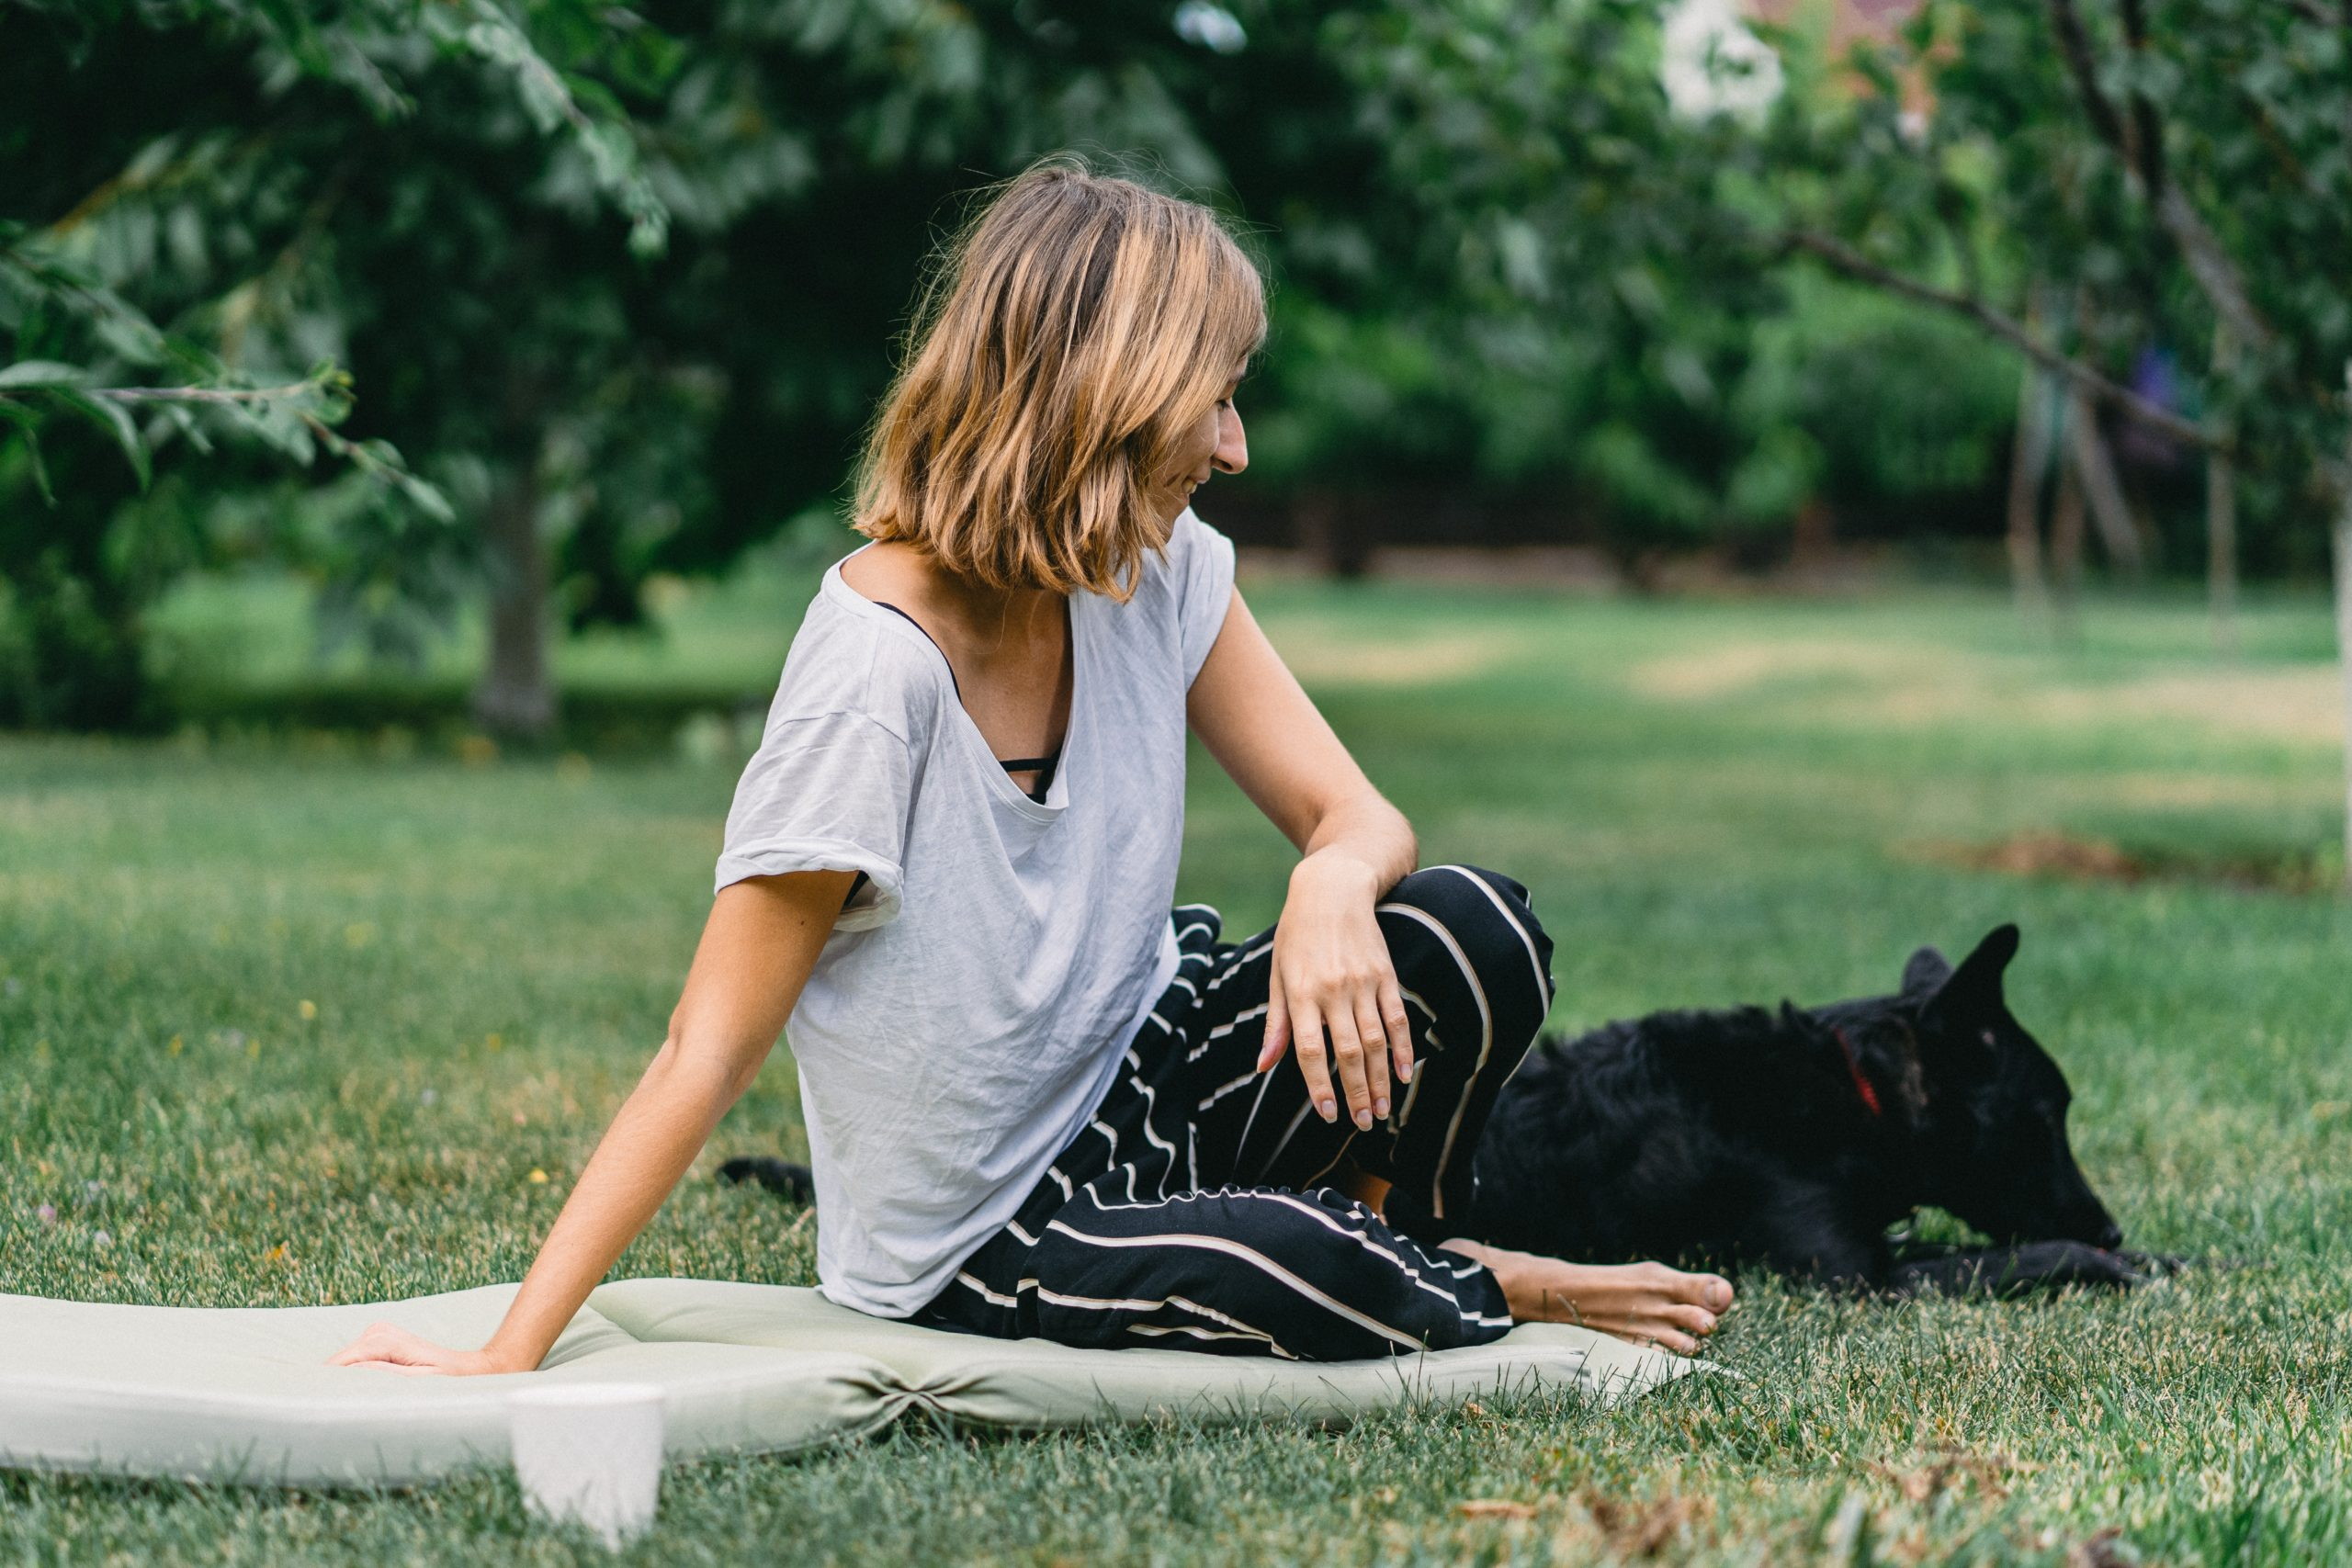 dog friend animal stockpack pixabay scaled Alternative Health Treatments for Dogs